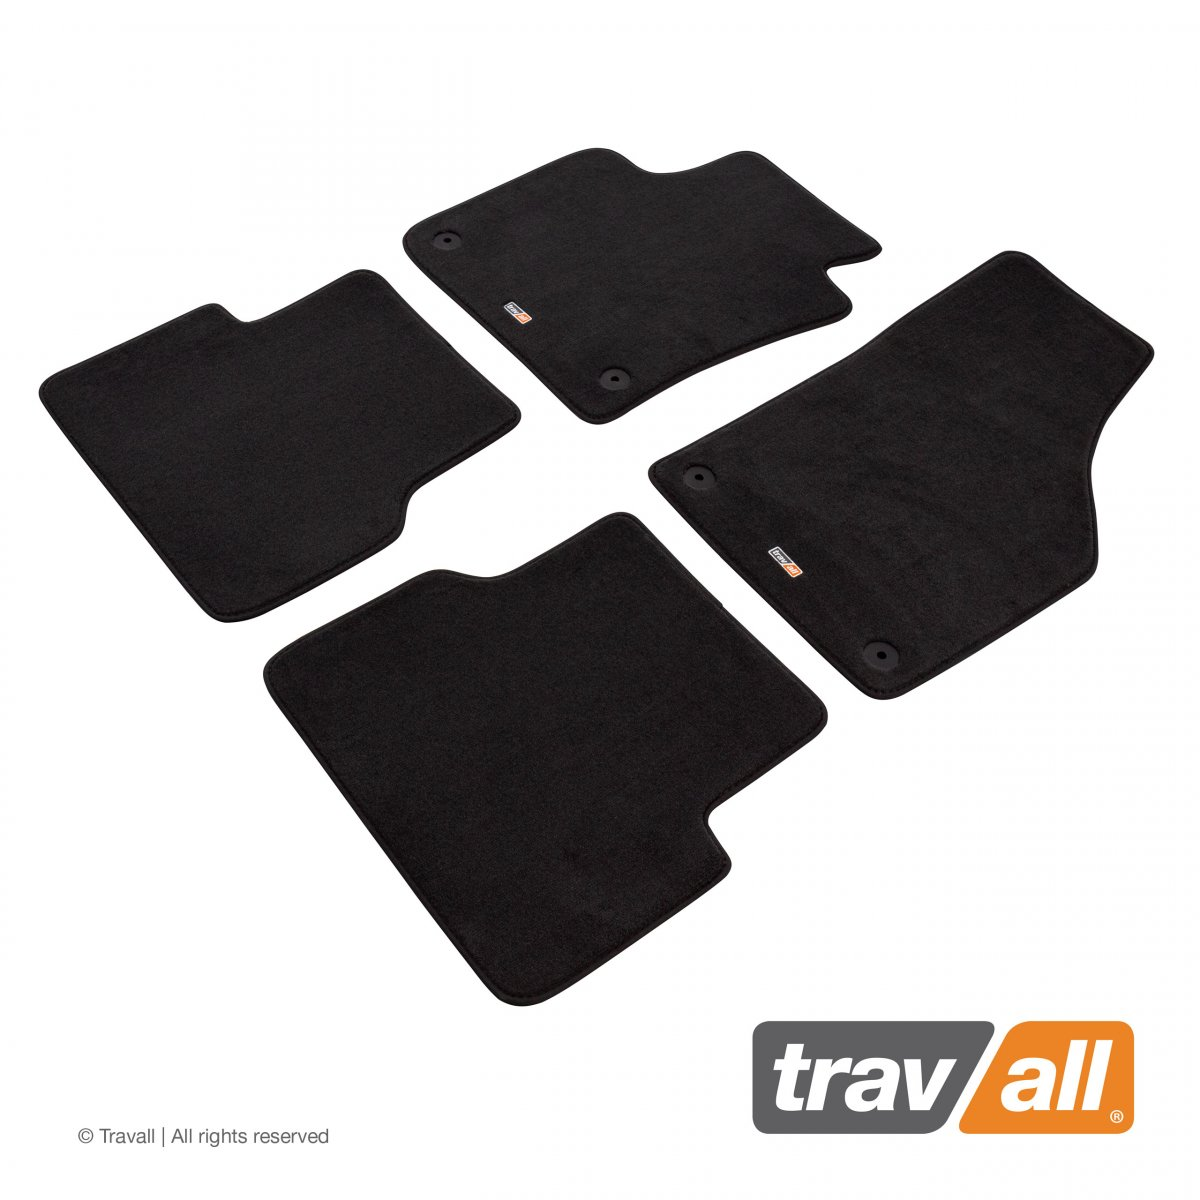 Travall® MATS [LHD] for Volkswagen Tiguan (2011 - 2016)